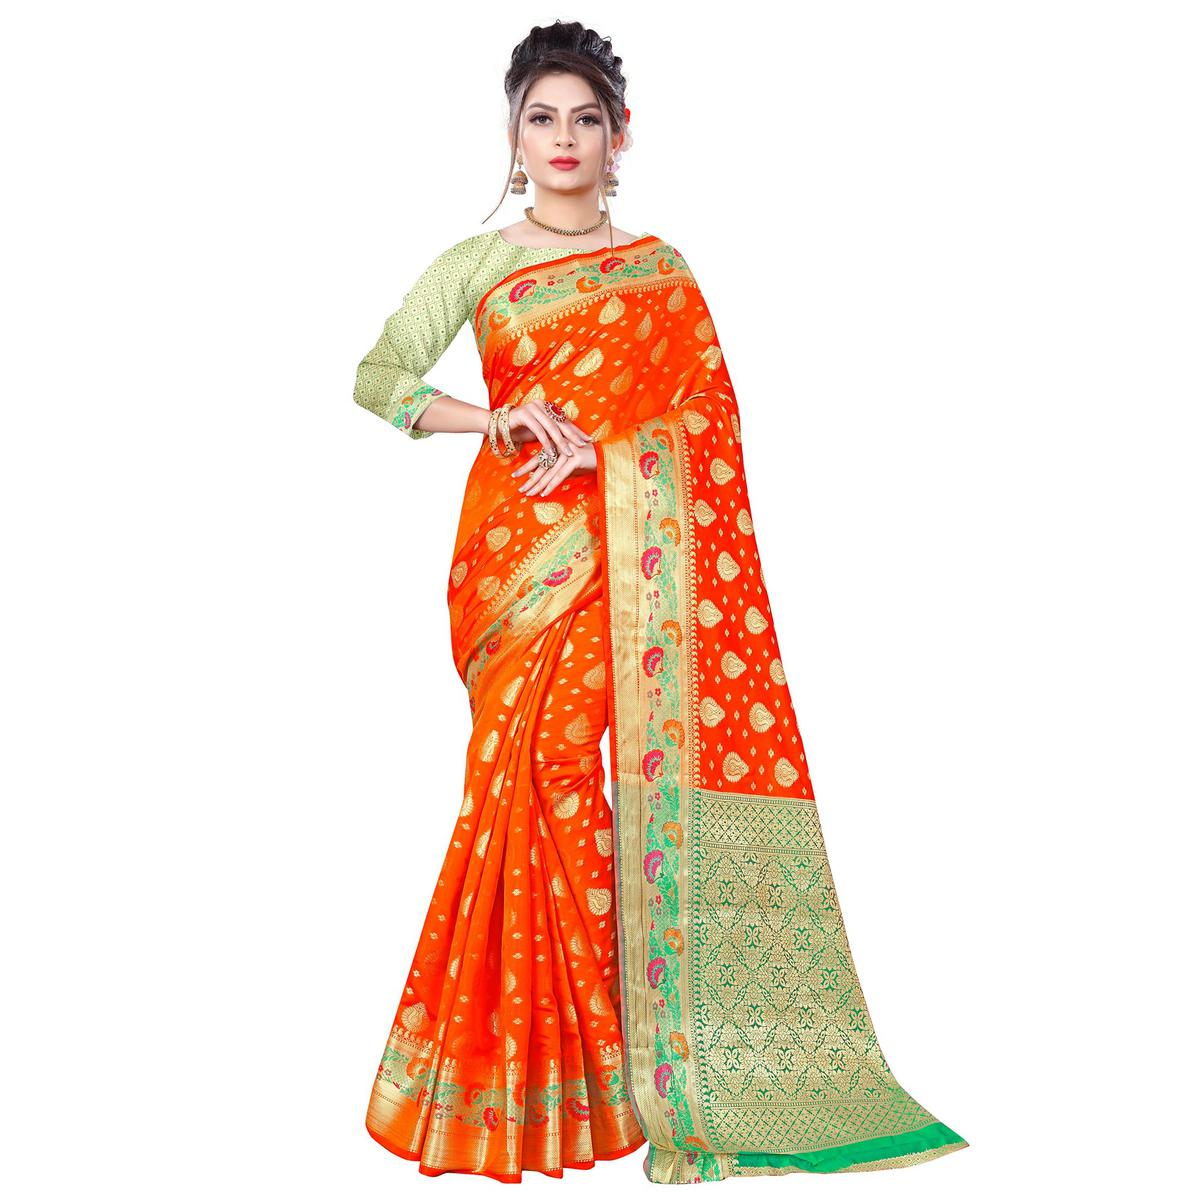 Jazzy Orange Colored Festive Wear Woven Banarasi Silk Saree